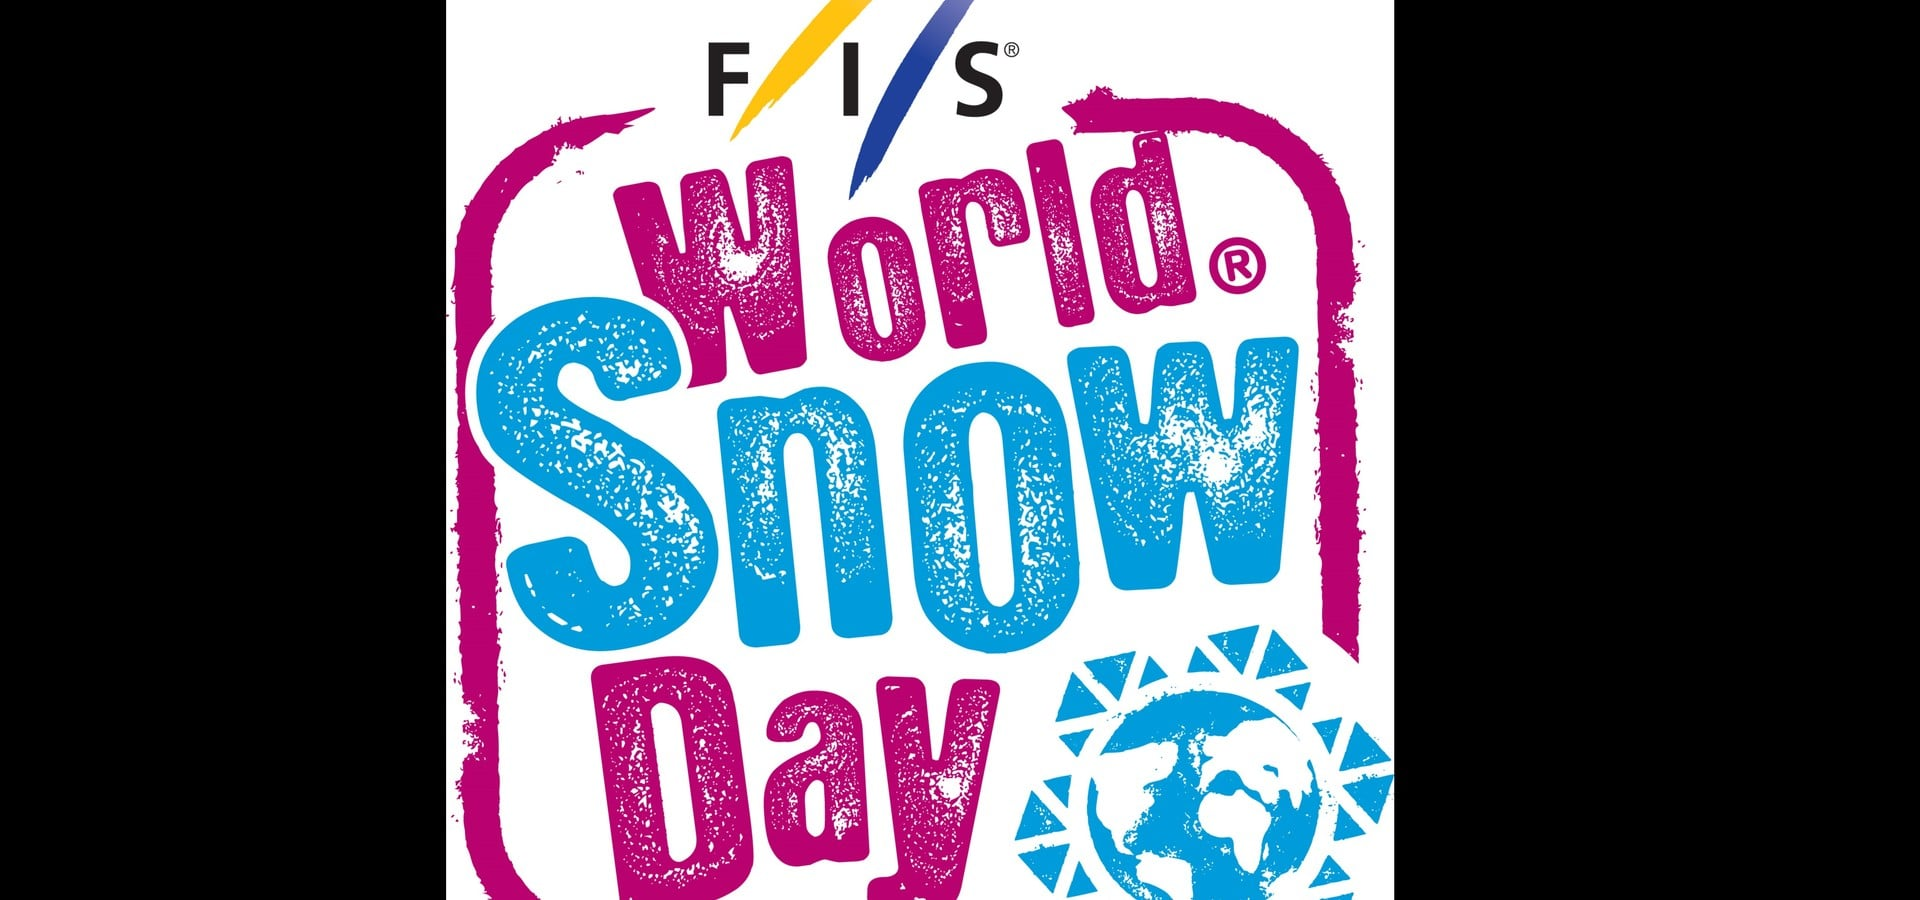 20.01 is the World Snow Day 2019